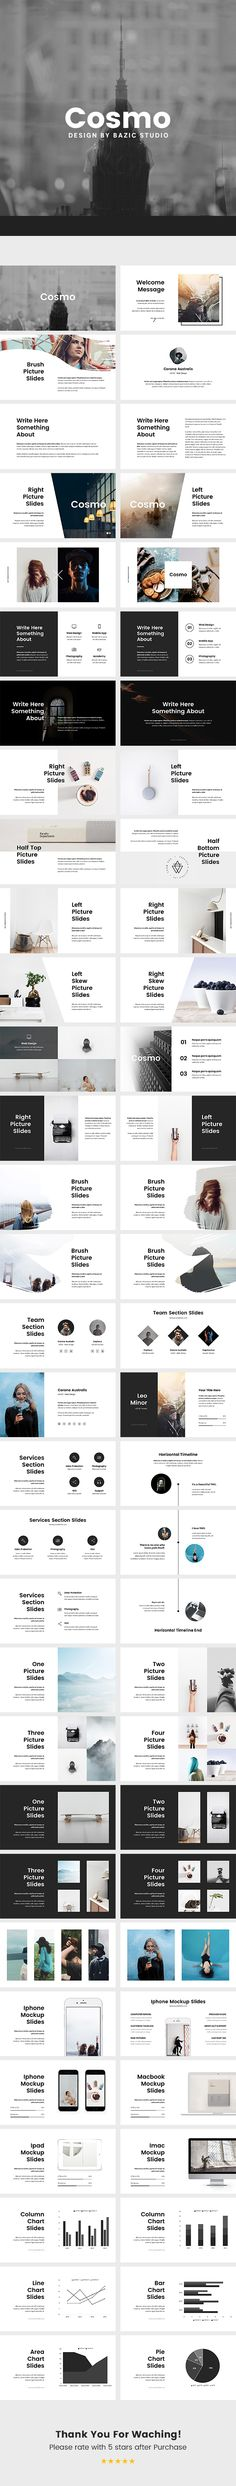 Cosmo Minimal Powerpoint Template #modern #infographic • Download ➝ https://graphicriver.net/item/cosmo-minimal-powerpoint-template/18377174?ref=pxcr